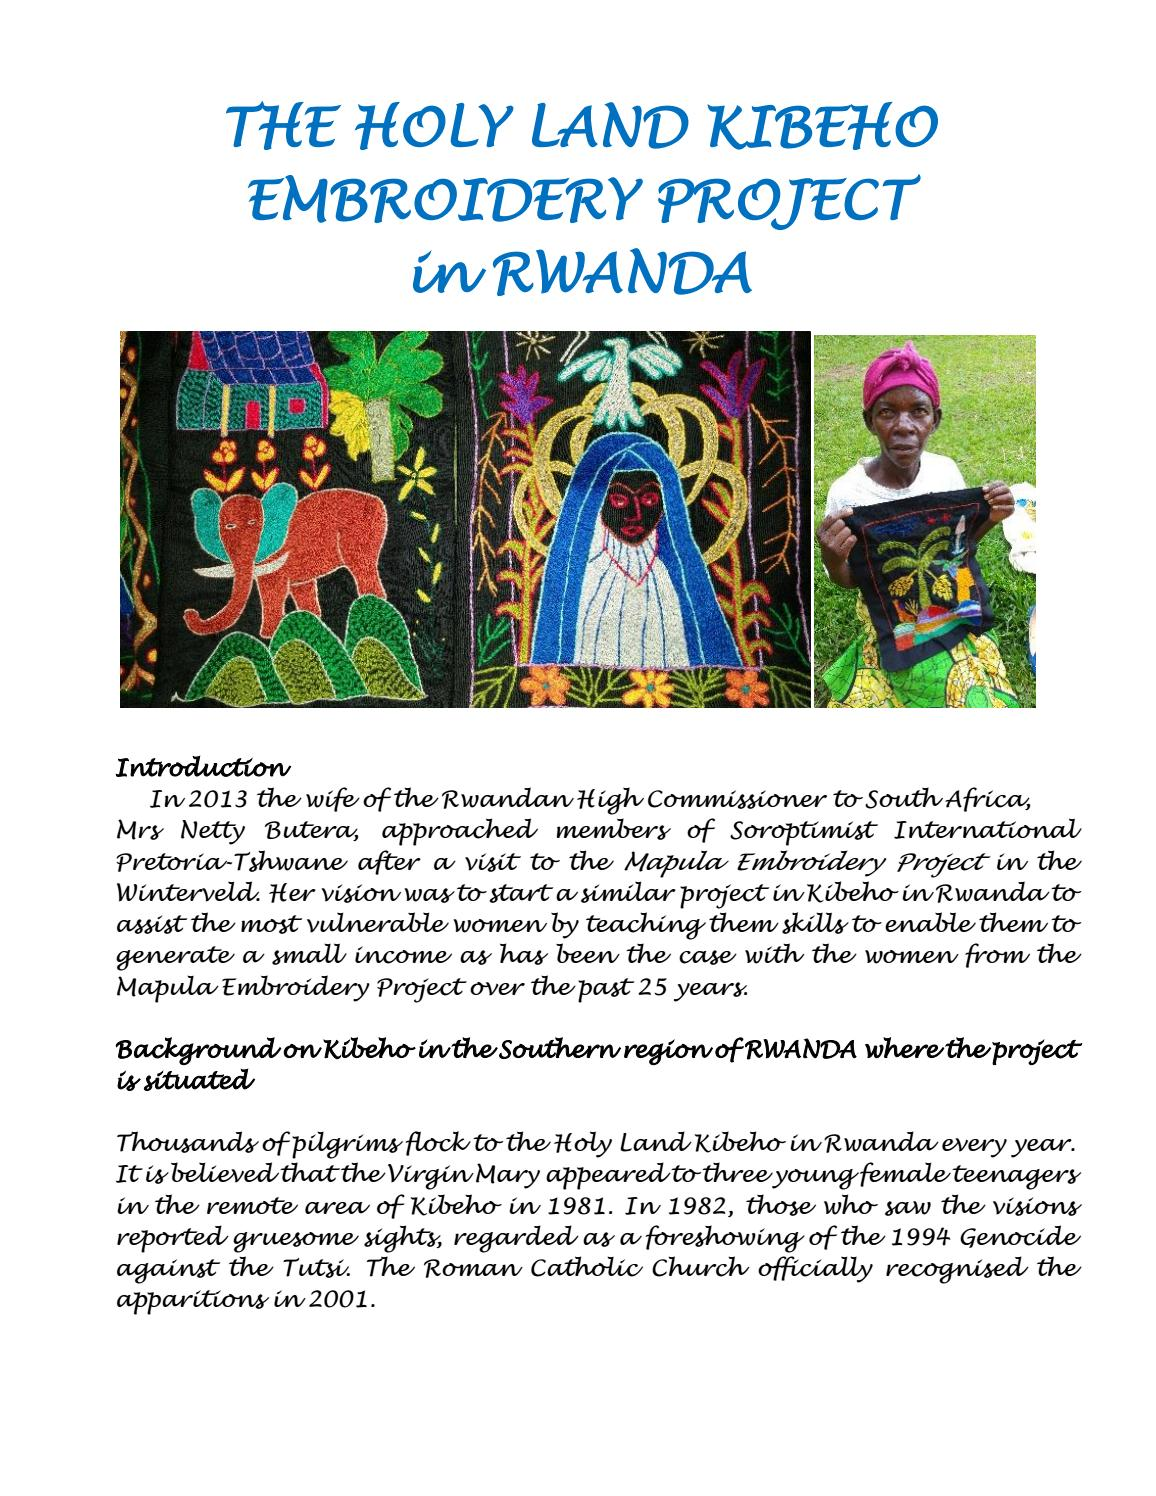 The Holy Land Kibeho Embroidery Project in Rwanda by